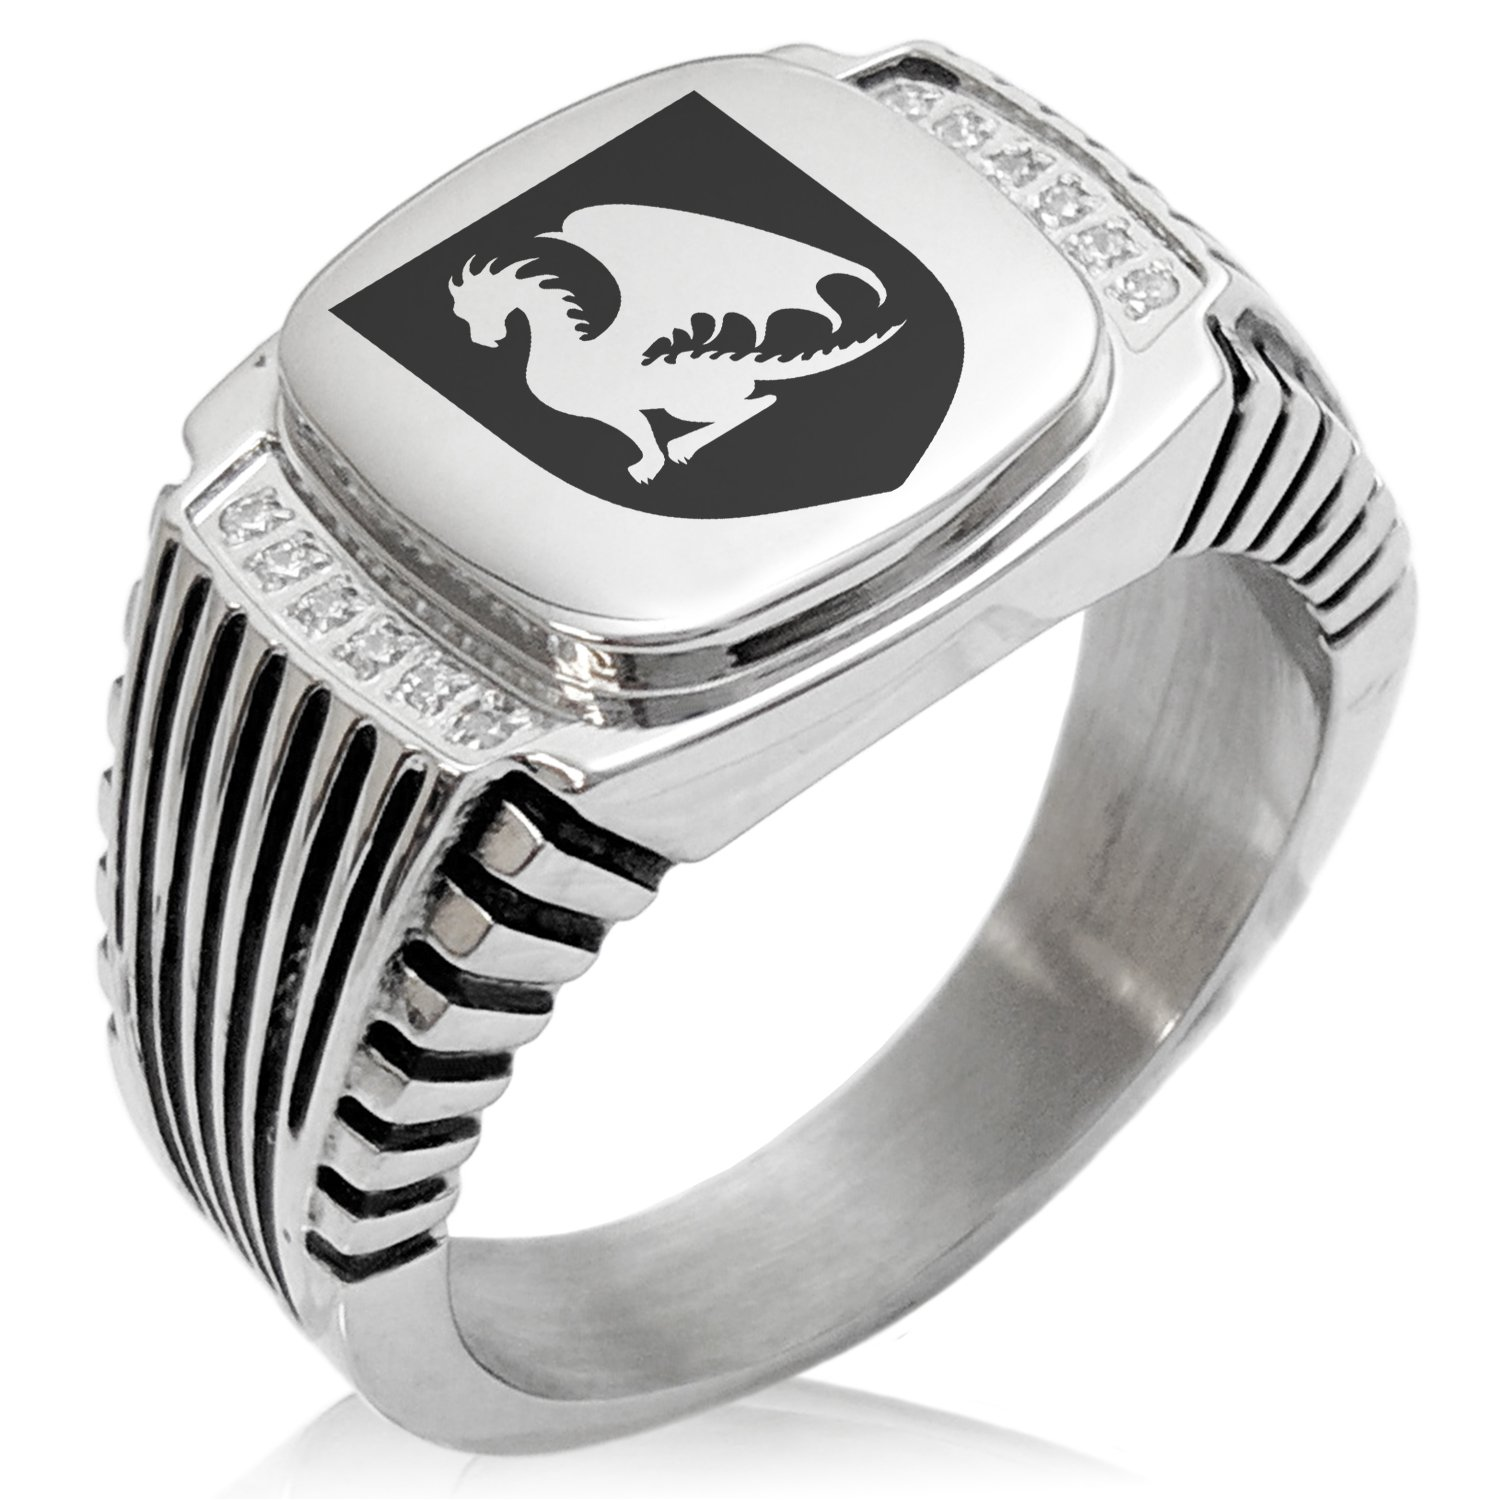 Two-Tone Stainless Steel Dragon Guardian Coat of Arms Shield Engraved Clear Cubic Zirconia Ribbed Needle Stripe Pattern Biker Style Polished Ring, Size 10